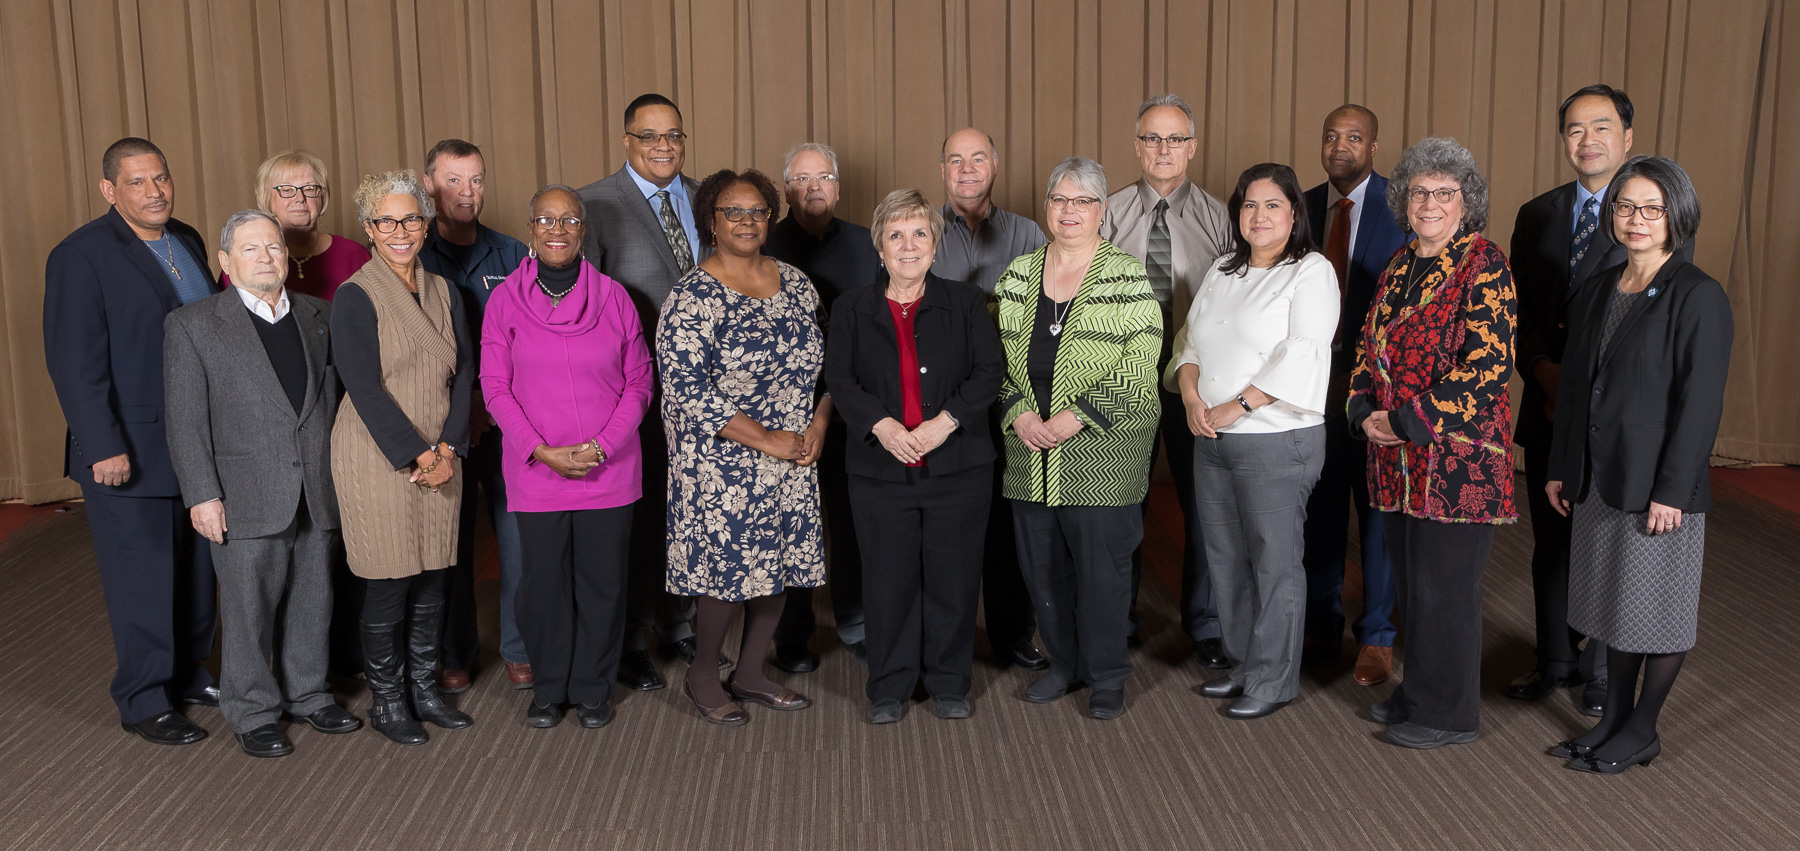 Back row, left to right, Jaime Ramos, Maureen Greene, James Hosty, Cornell Lambert, Peter Vandenberg, Walter Rabenda, Michael Barna, Vernon Crowder, A. Gabriel Esteban, front row, left to right; Ilya Meiertal, Lori Murphy, Enora Brown, Nell Cobb, Terry Taylor, Donna Del Giudice, Yolanda Mondragon, Susan Jacobs, Josephine Esteban. DePaul University faculty and staff members are inducted into DePaul University's 25 Year Club, Tuesday, Nov. 14, 2017, at the Lincoln Park Student Center. Employees celebrating their 25th work anniversary were honored at the luncheon with their colleagues and will have their names added to plaques located on the Loop and Lincoln Park Campuses. (DePaul University/Jeff Carrion)